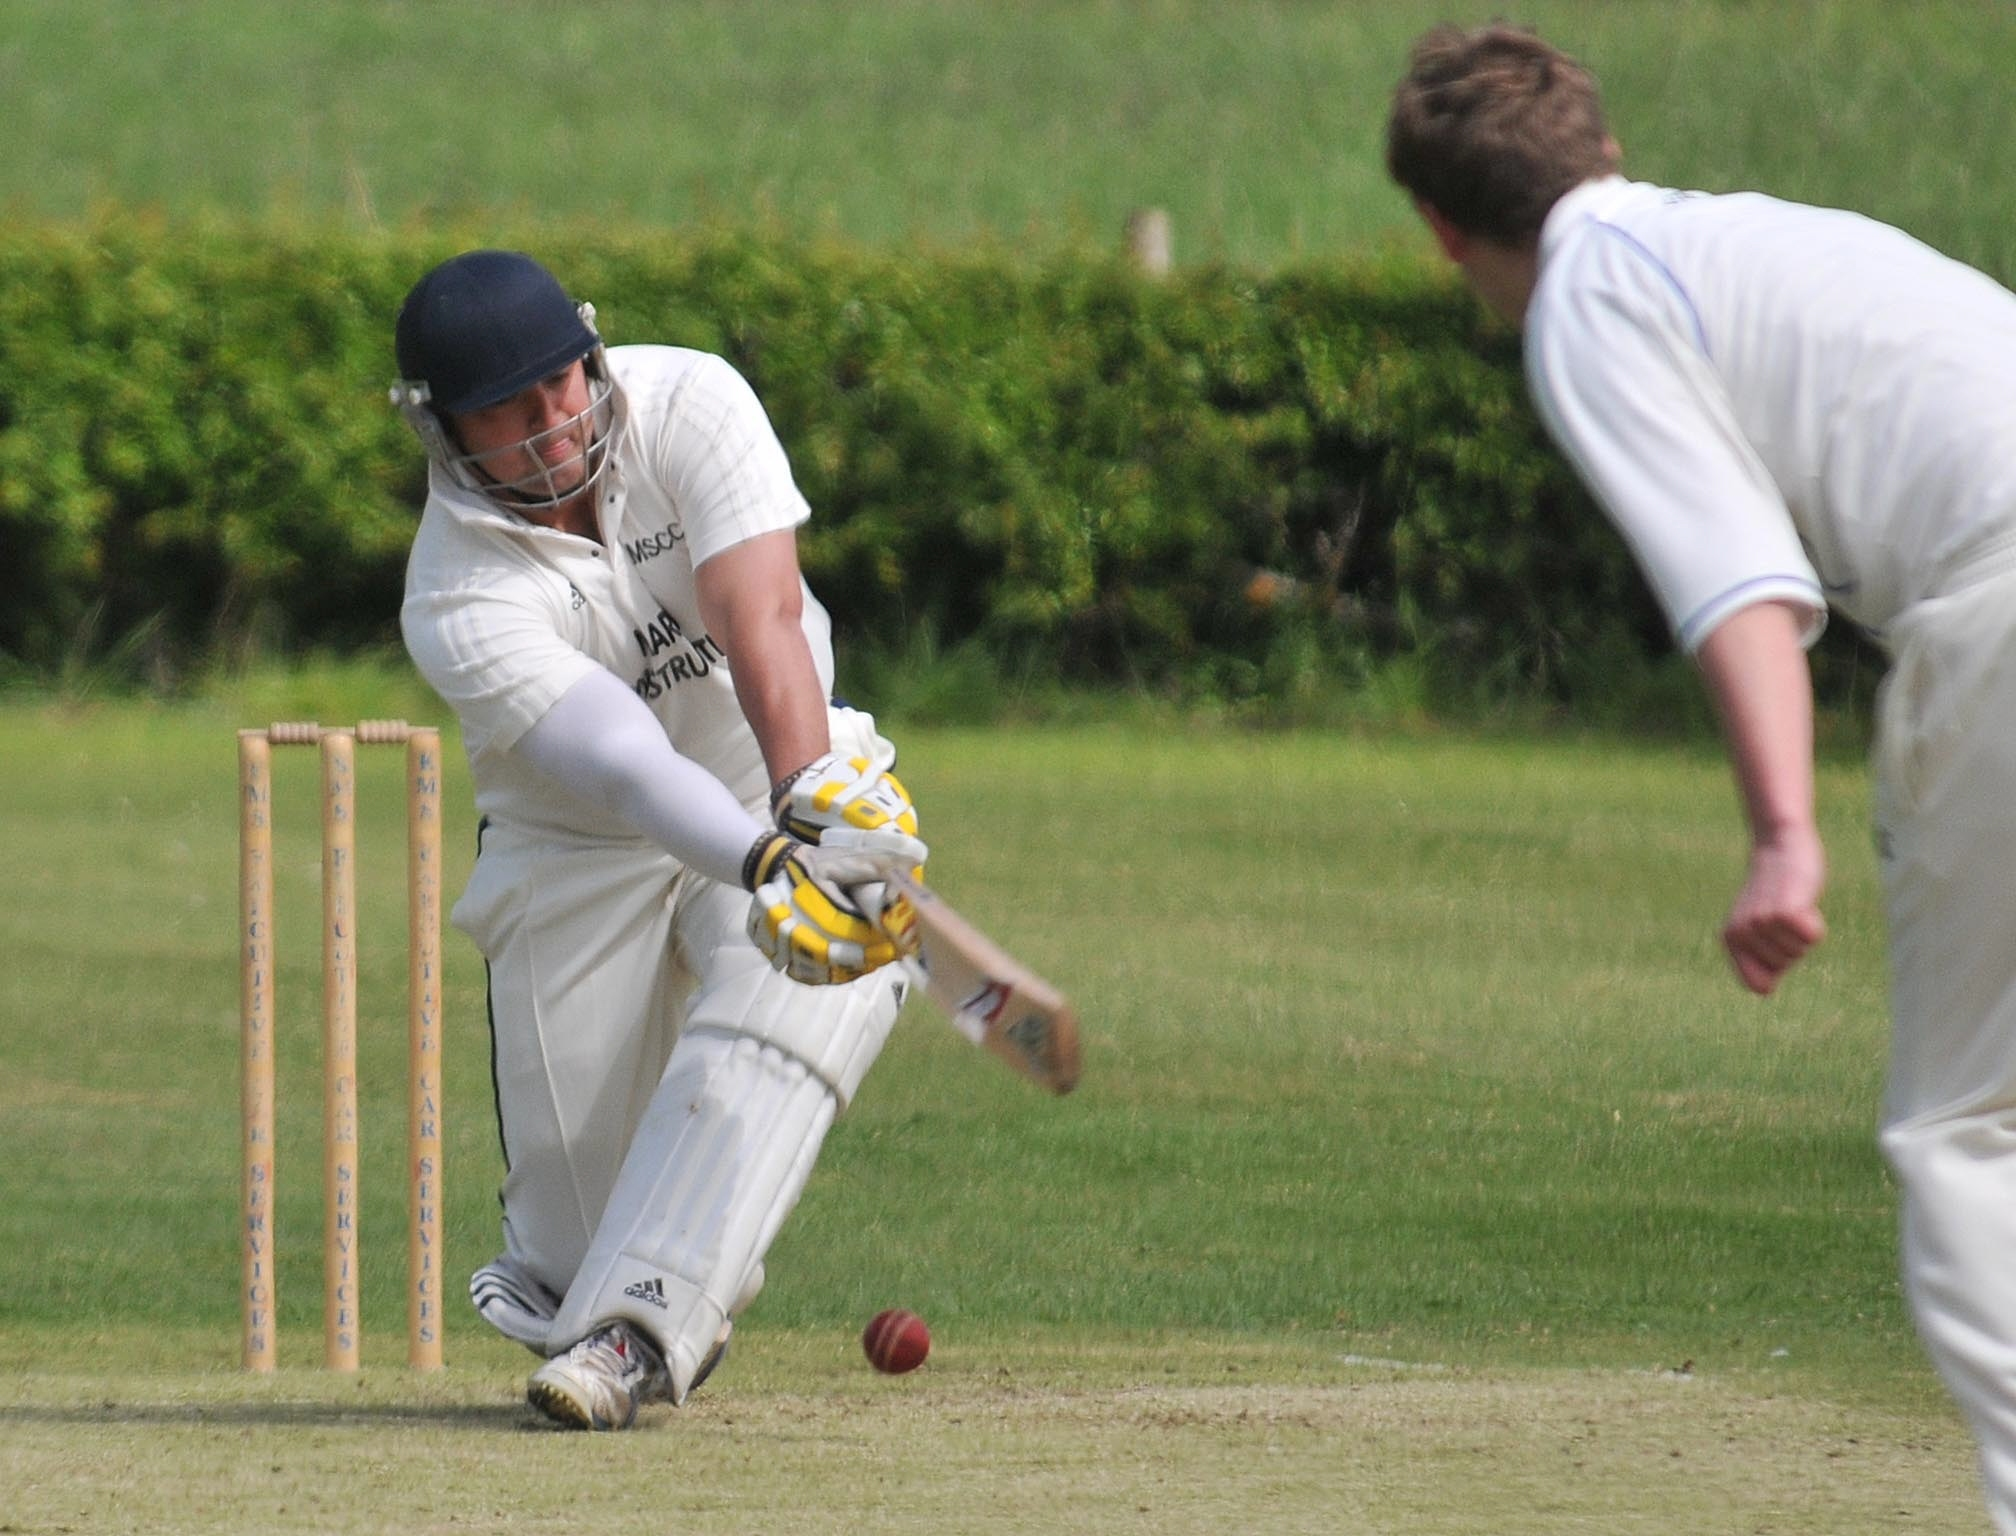 Dave Gardner, who made a crucial 44 in Kirkby-moor-side's victory over Settring-ton - although the result is under review